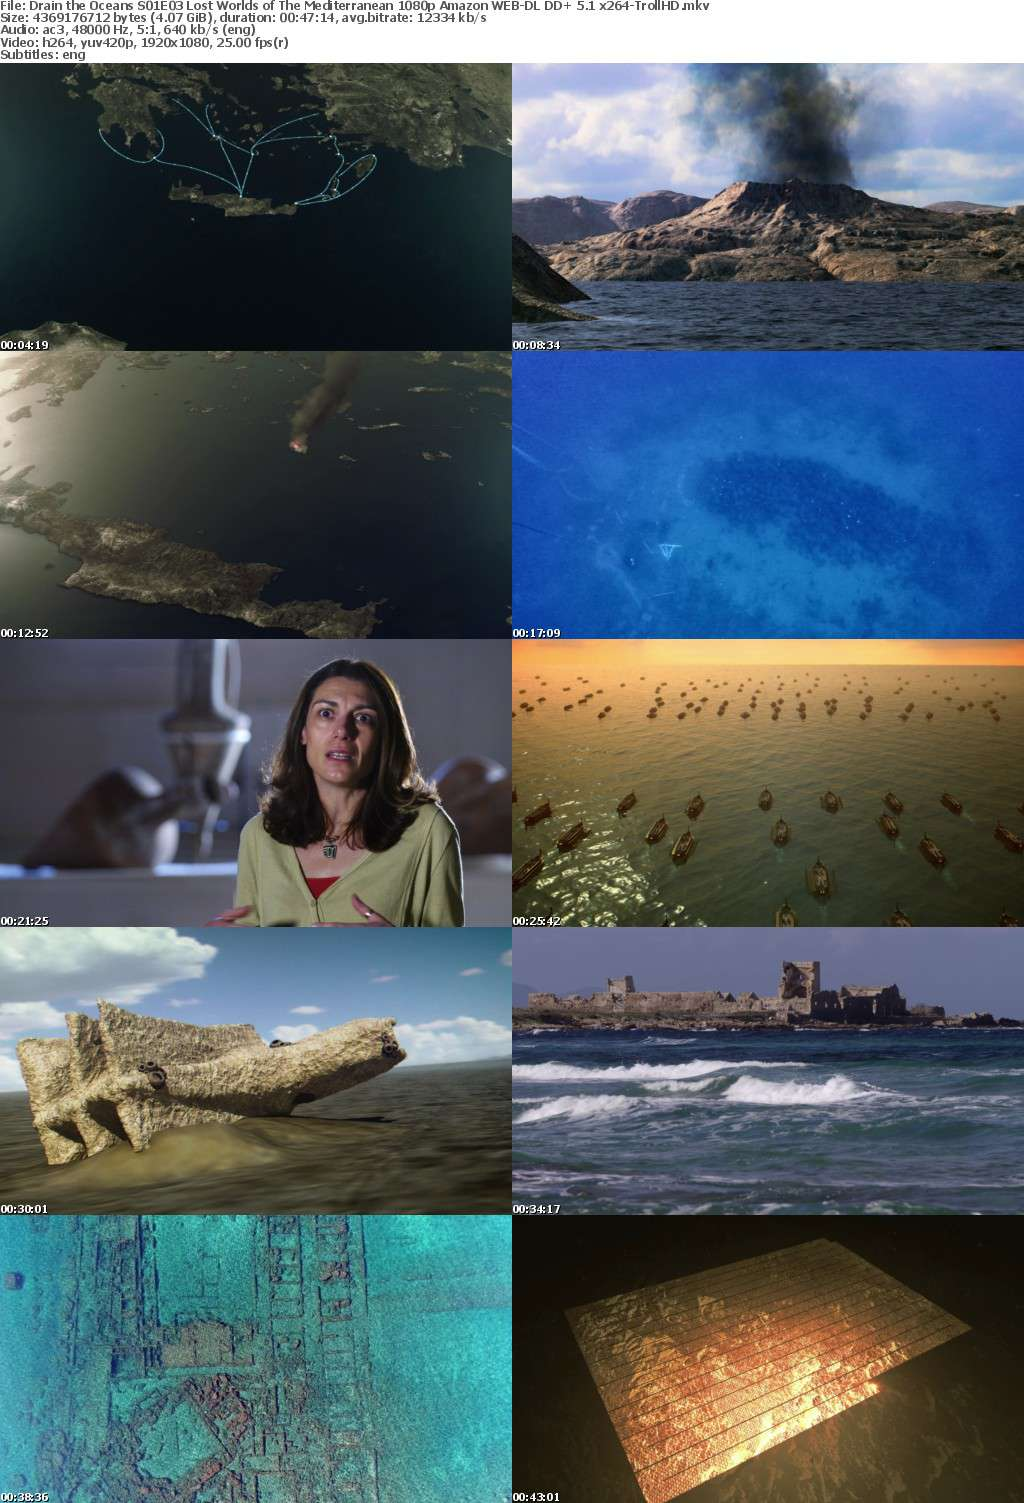 Drain the Oceans S01E03 Lost Worlds of The Mediterranean 1080p Amazon WEB-DL DD+ 5 1 x264-TrollHD